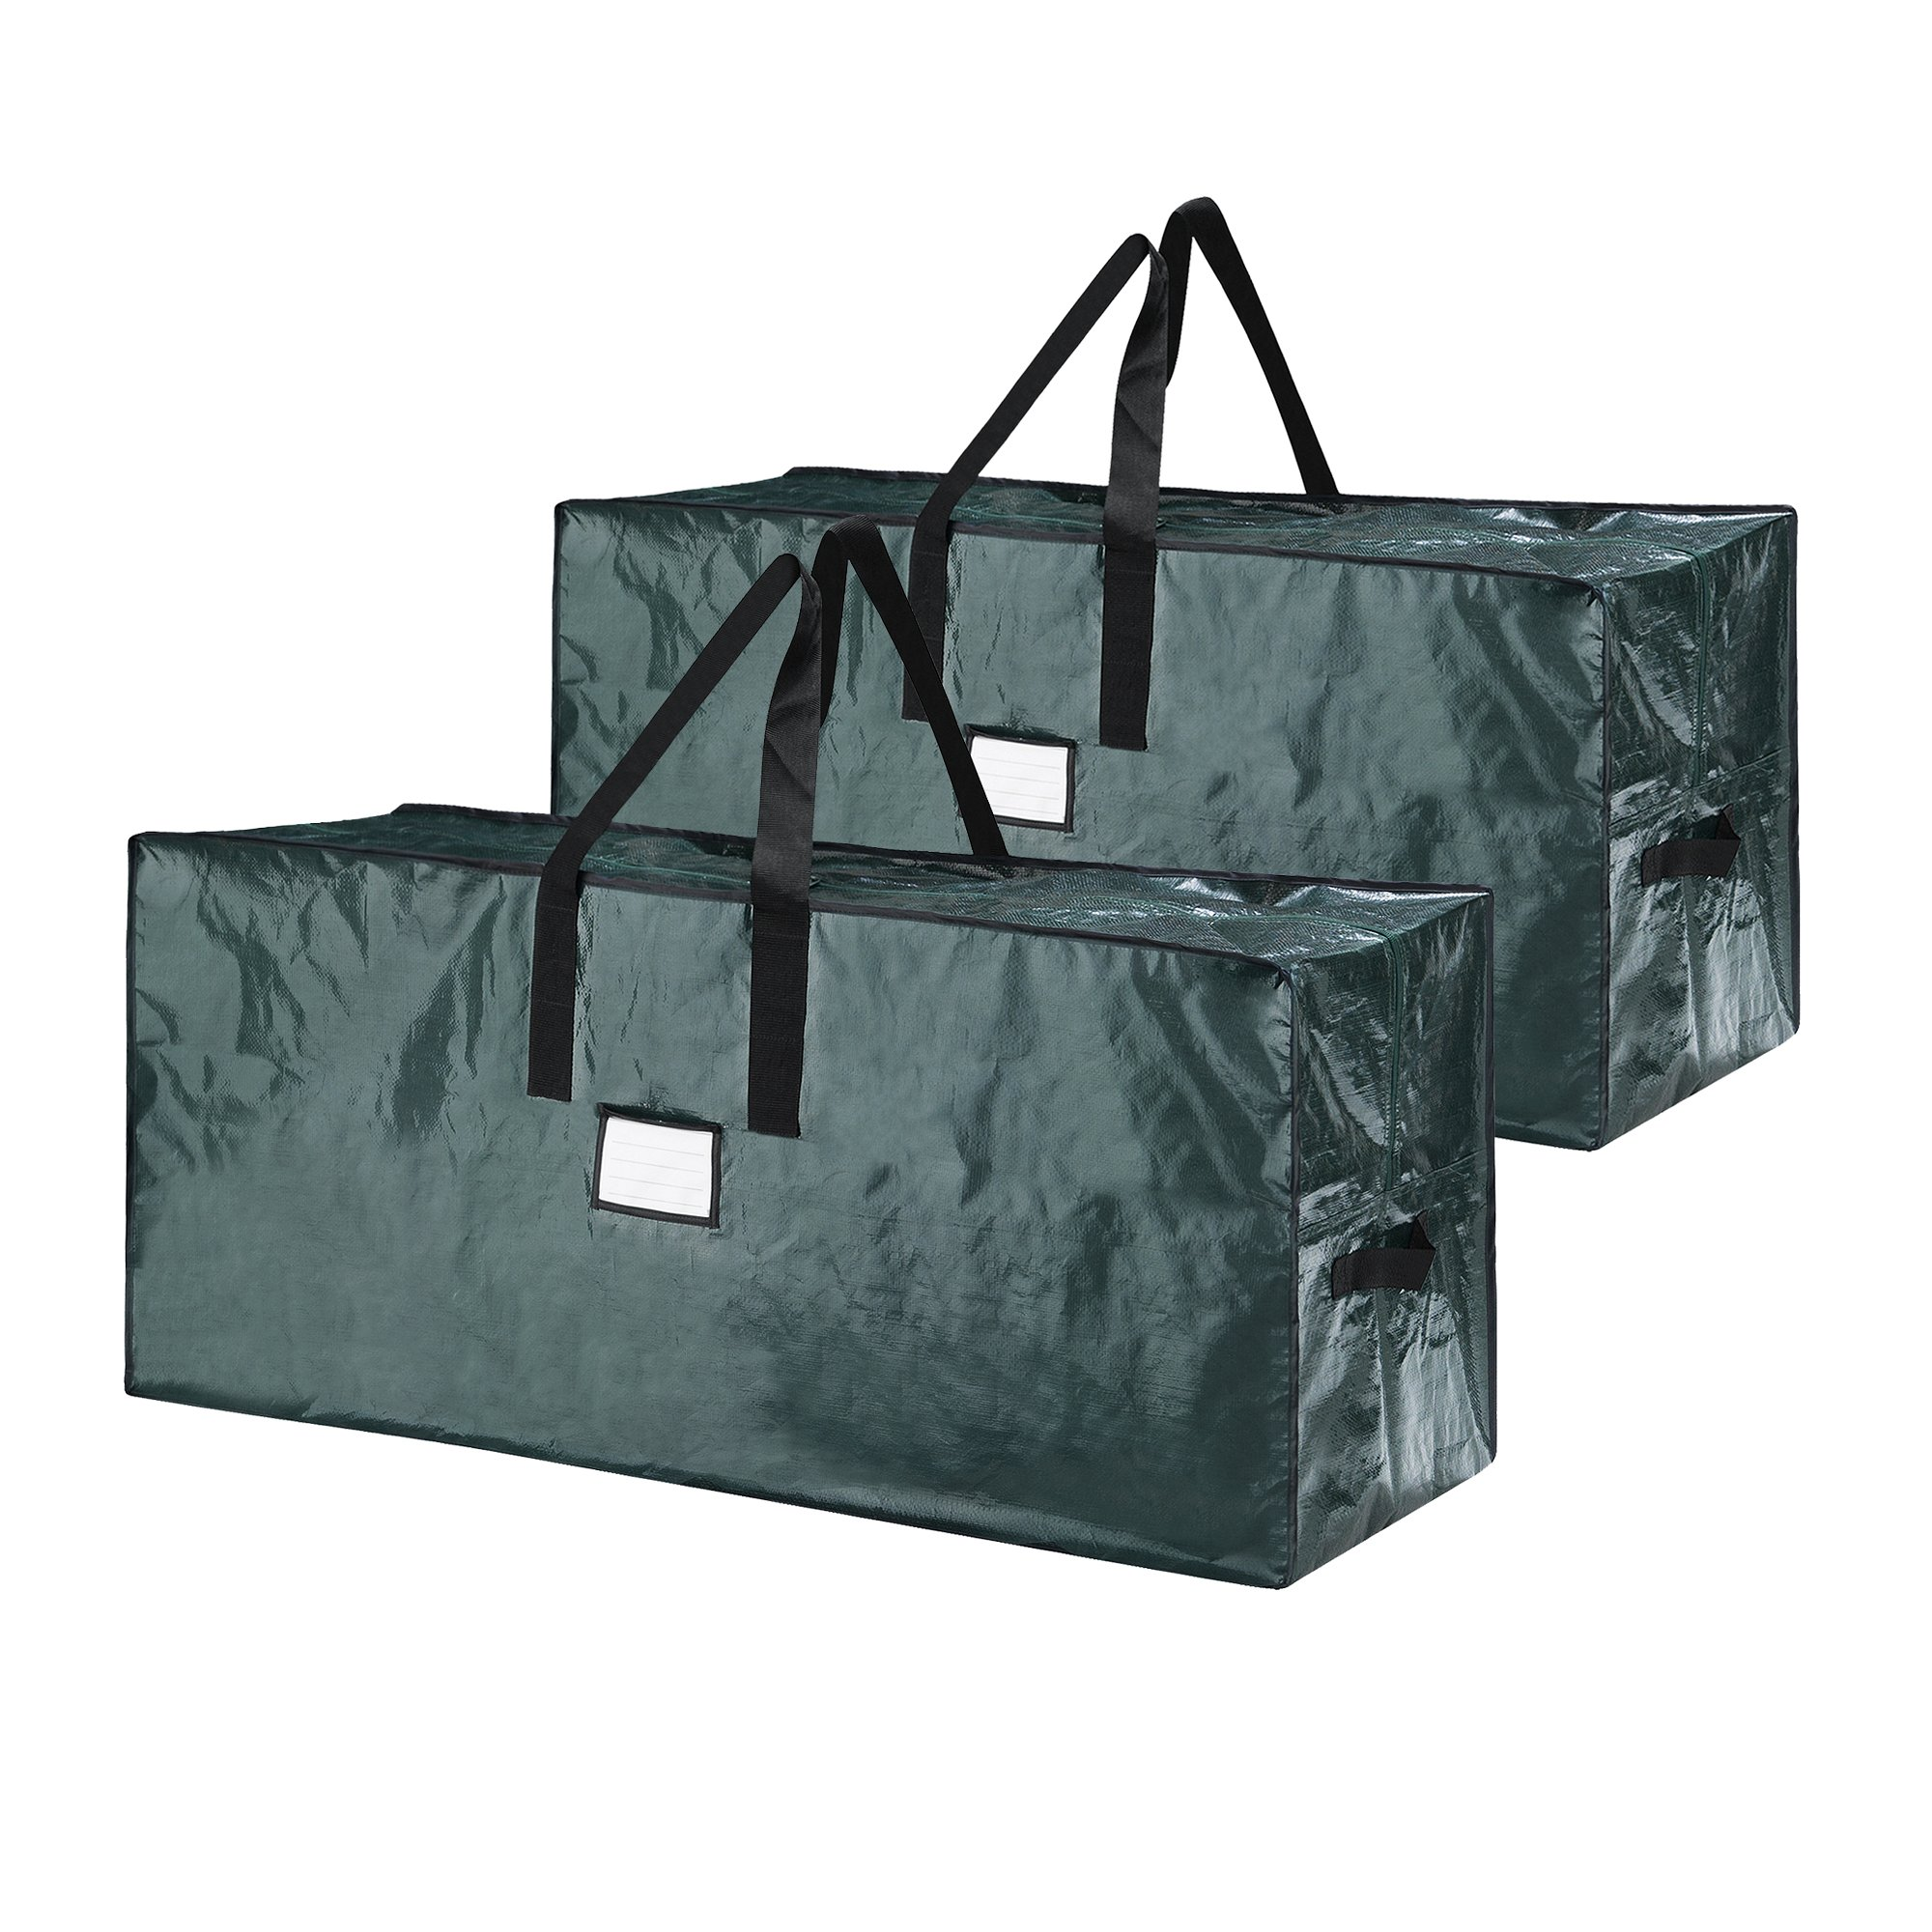 Elf Stor Bag for Christmas Tree Storage, (2) Extra Large Bags - Green